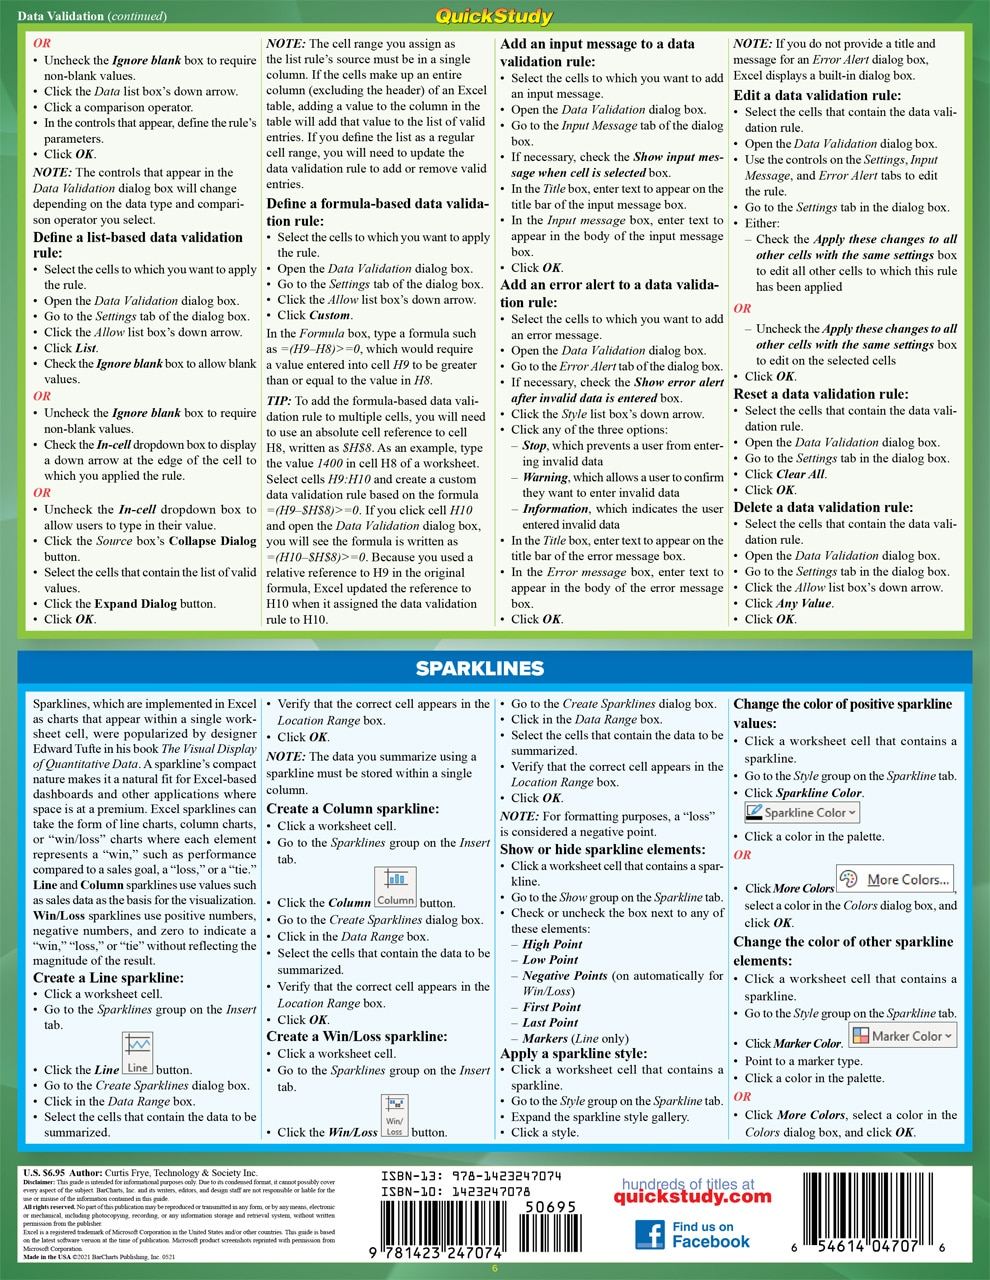 Quick Study QuickStudy Microsoft Excel 365: Advanced Laminated Study Guide BarCharts Publishing Computer Business Software Reference Back Image